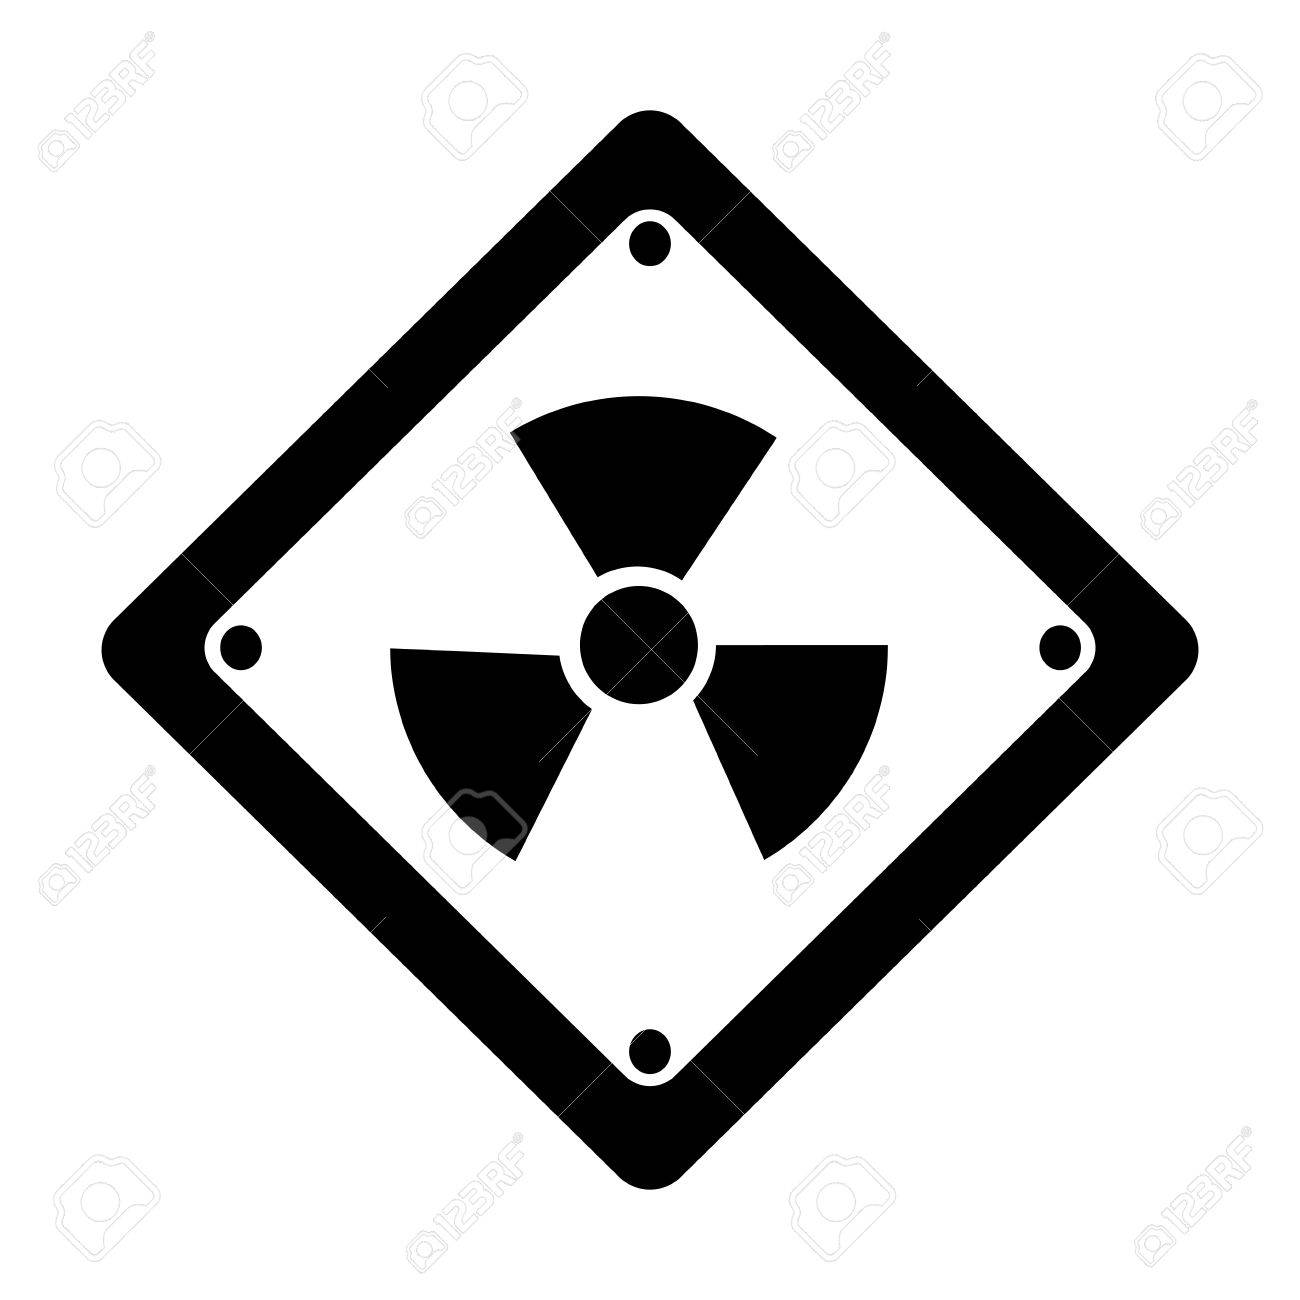 Toxic symbol icon image vector illustration design royalty free toxic symbol icon image vector illustration design stock vector 64676130 biocorpaavc Images